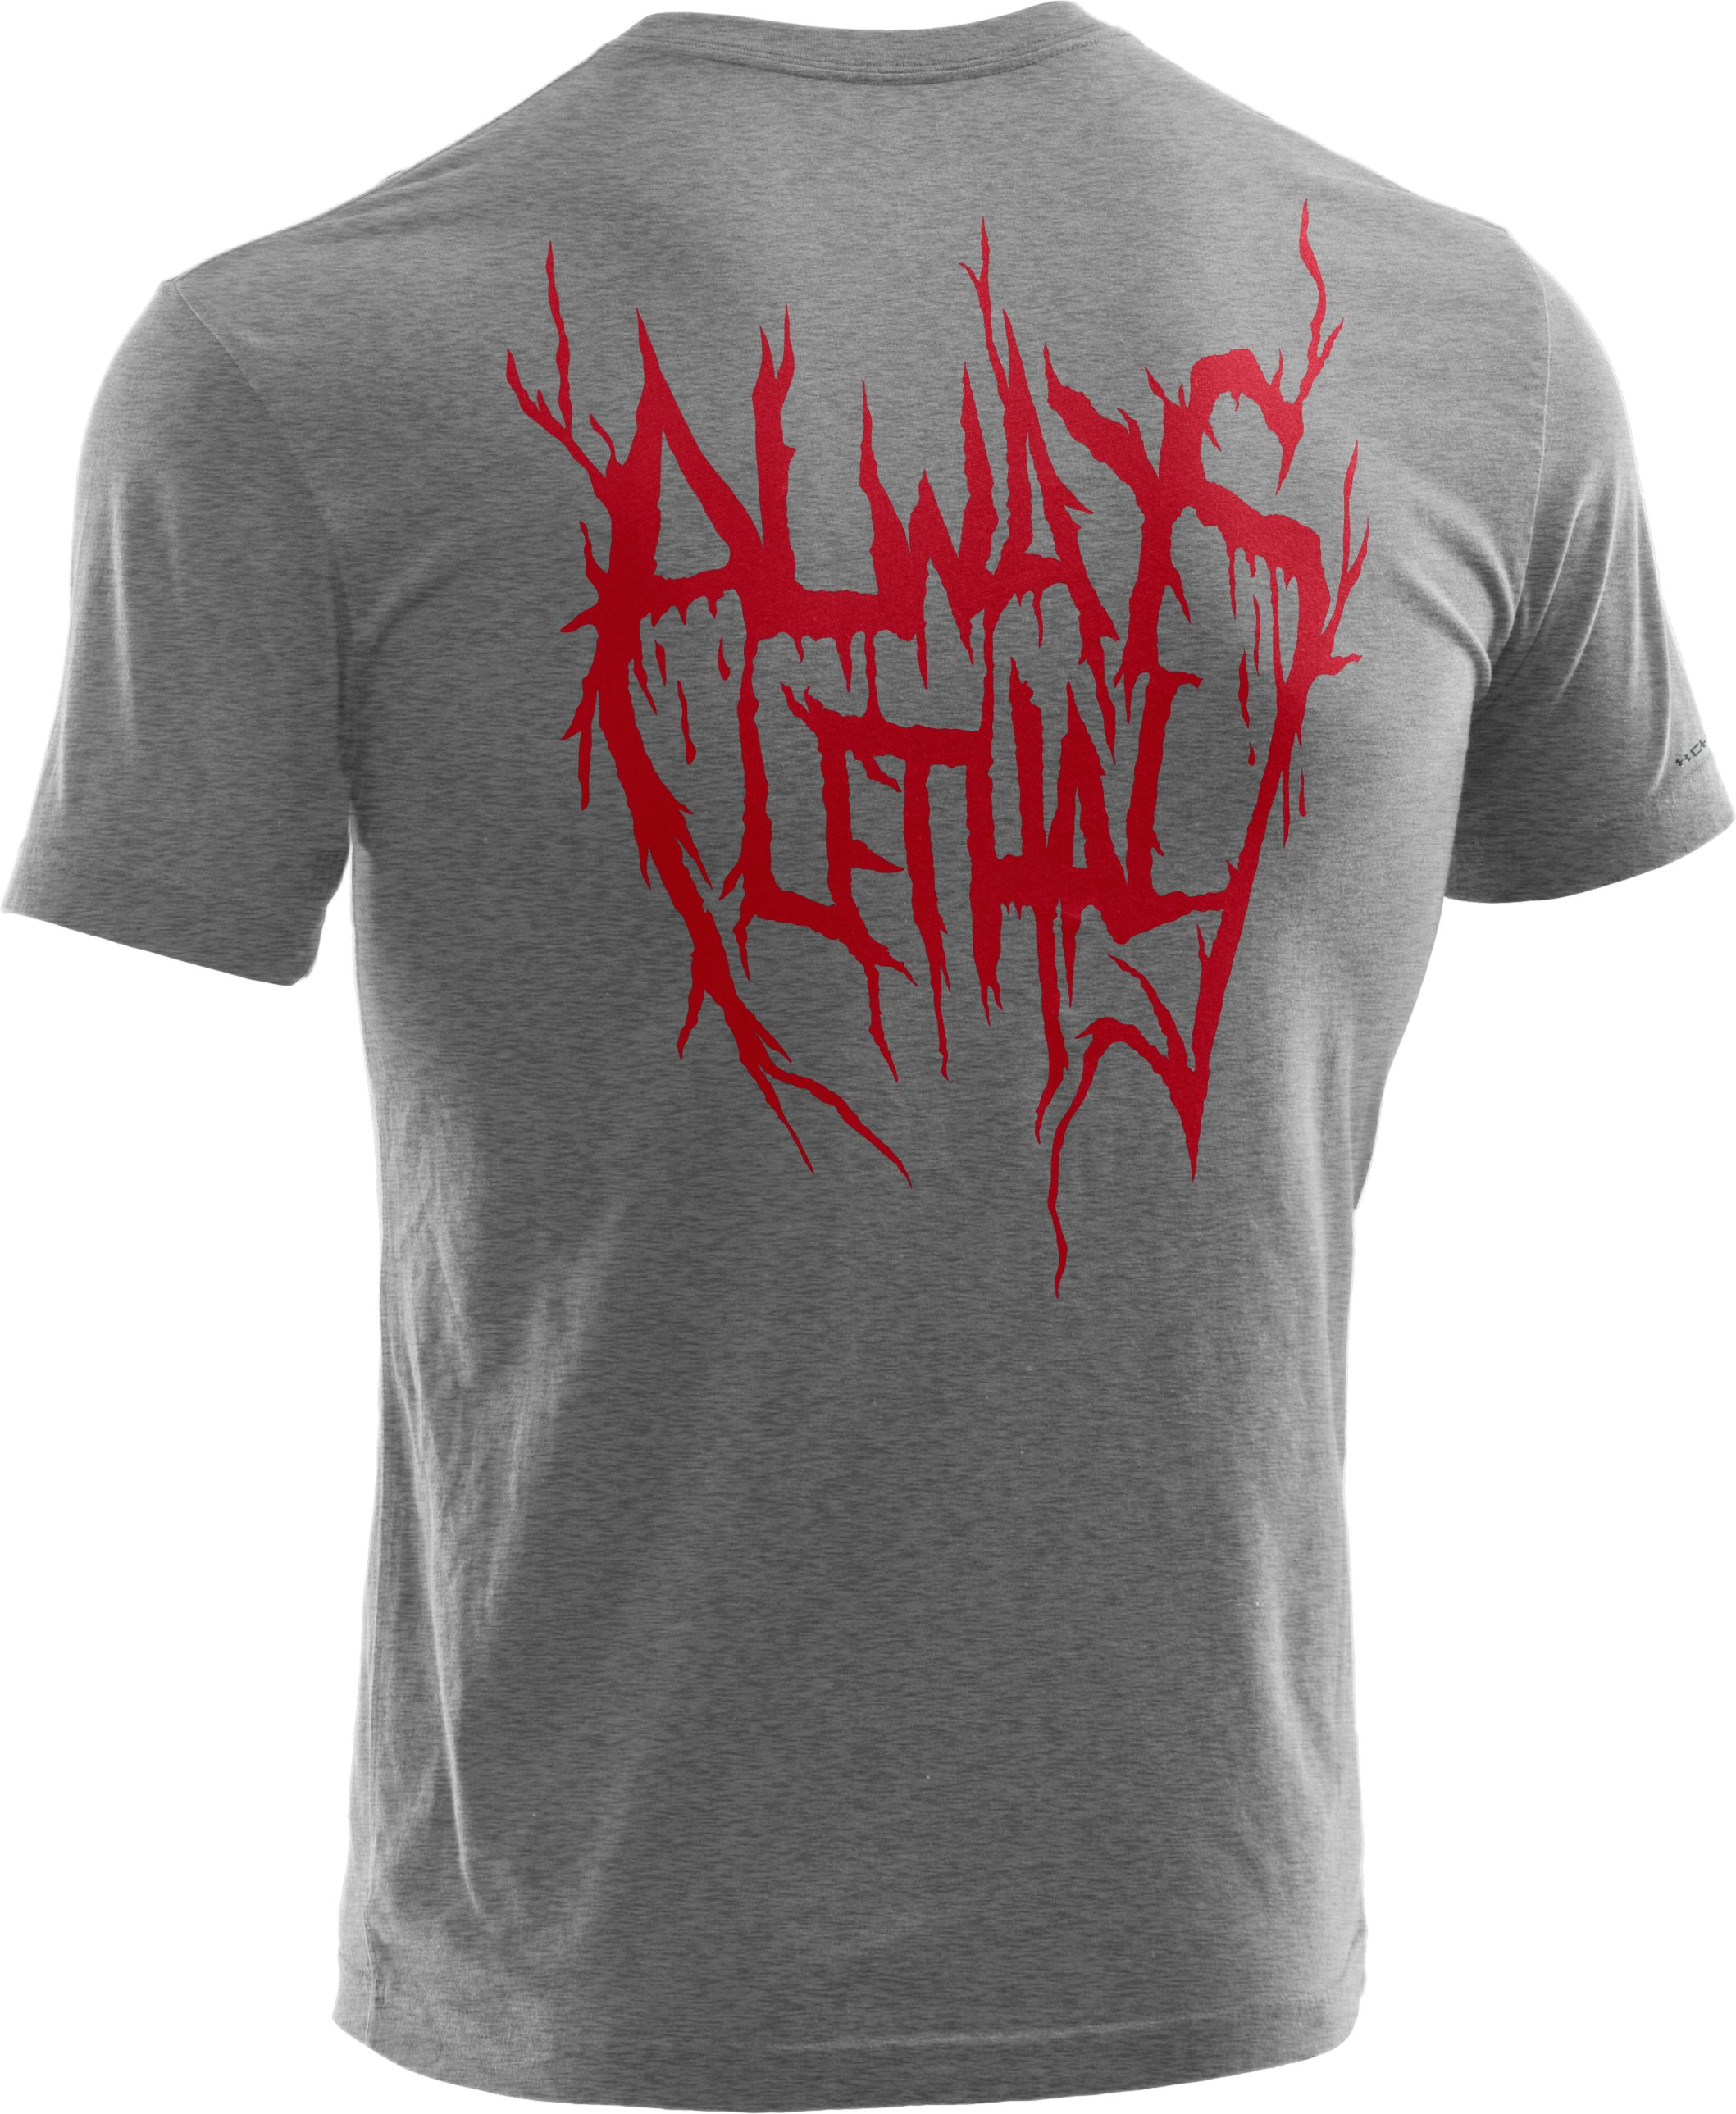 Men's Always Lethal™ Script T-Shirt, True Gray Heather